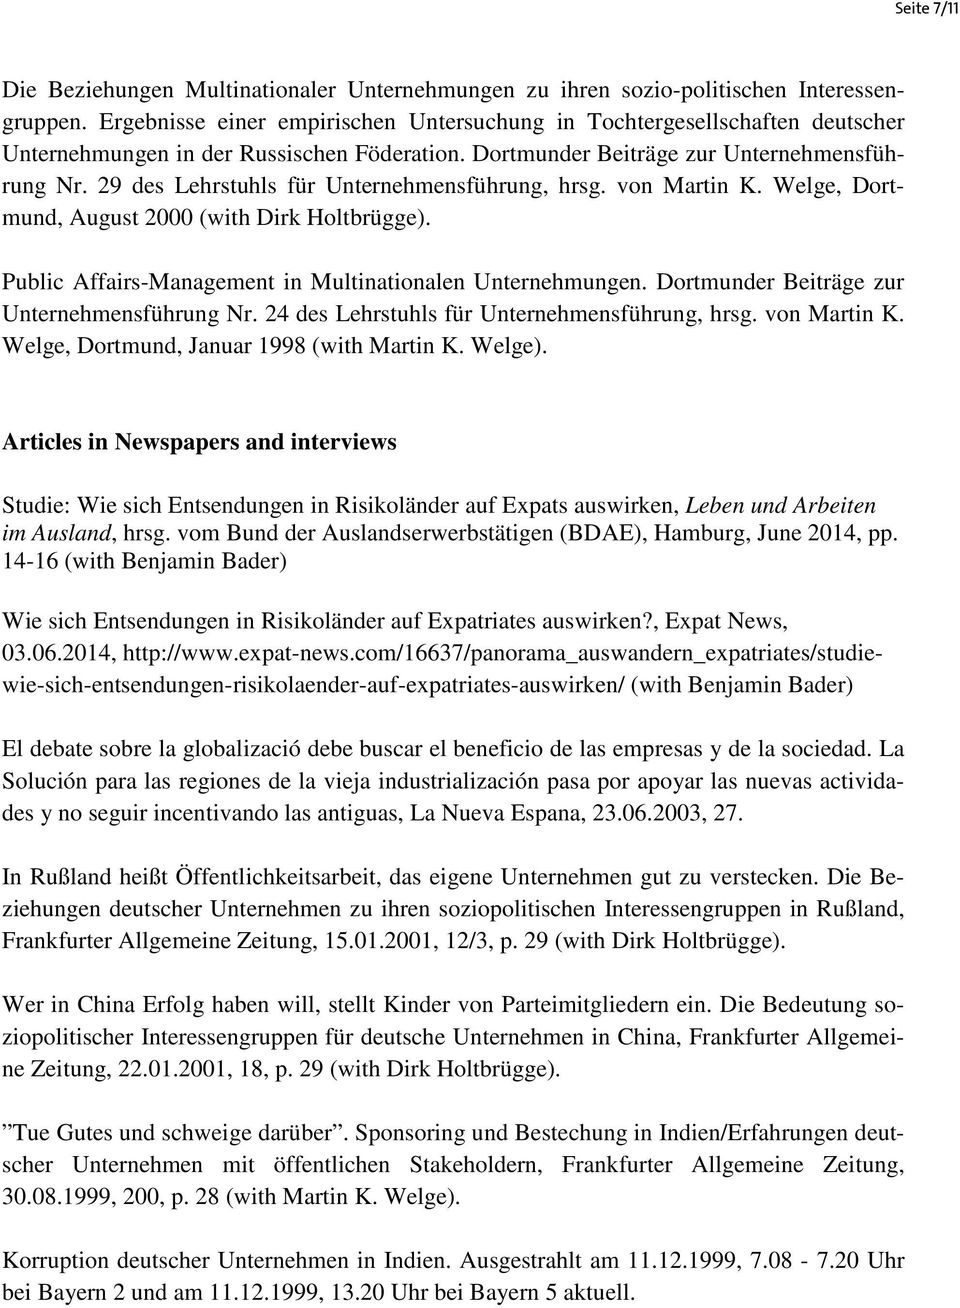 29 des Lehrstuhls für Unternehmensführung, hrsg. von Martin K. Welge, Dortmund, August 2000 (with Dirk Holtbrügge). Public Affairs-Management in Multinationalen Unternehmungen.